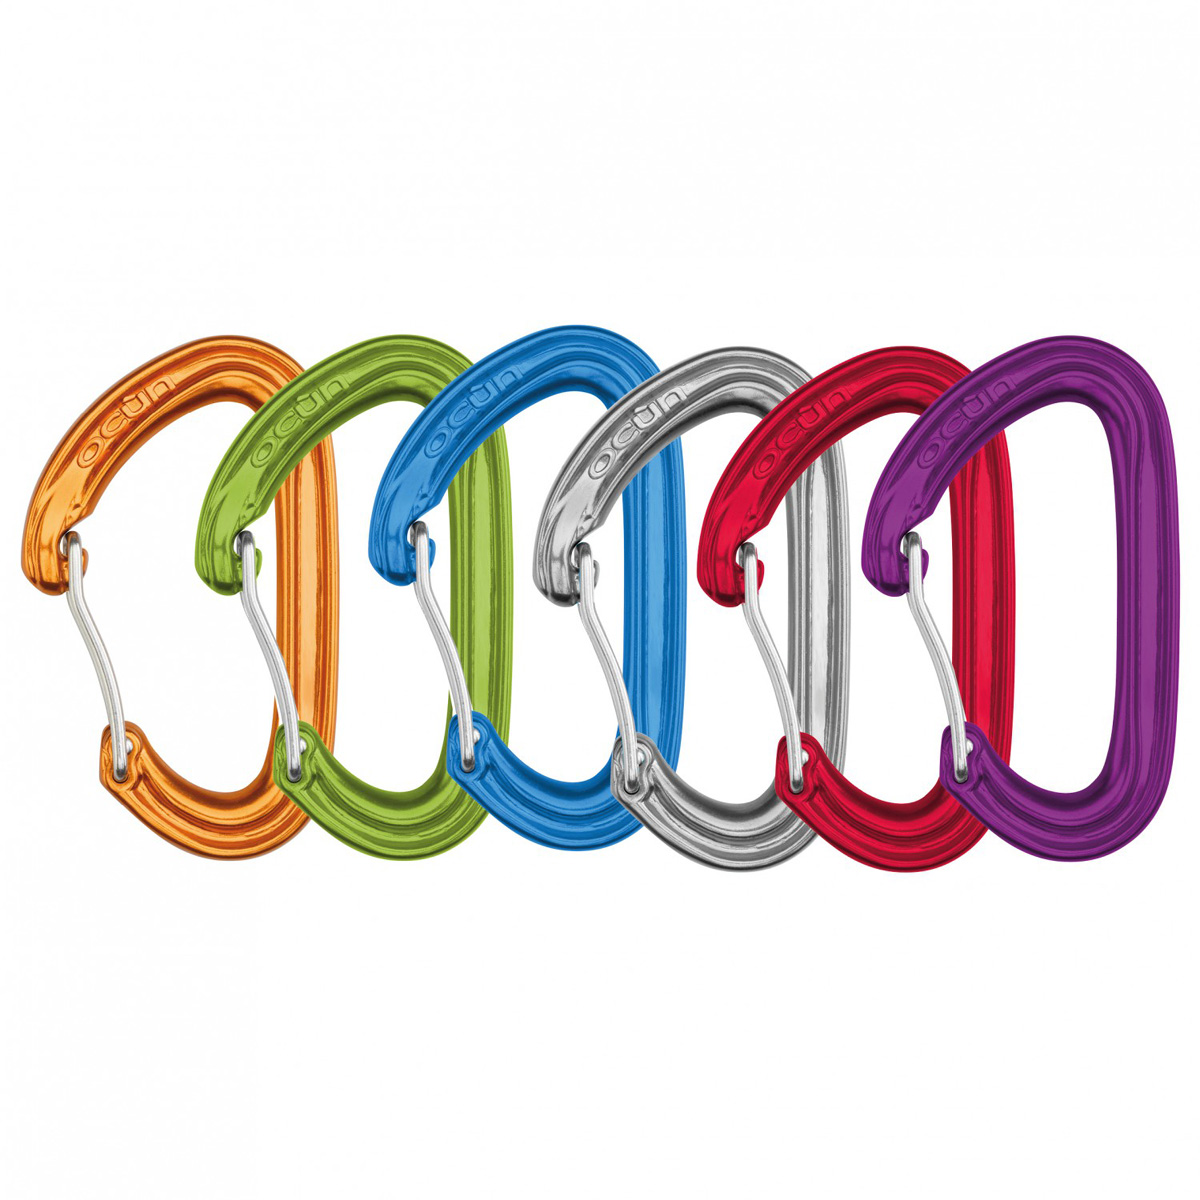 Ocun Kestrel Wire Gate 5+1 Set